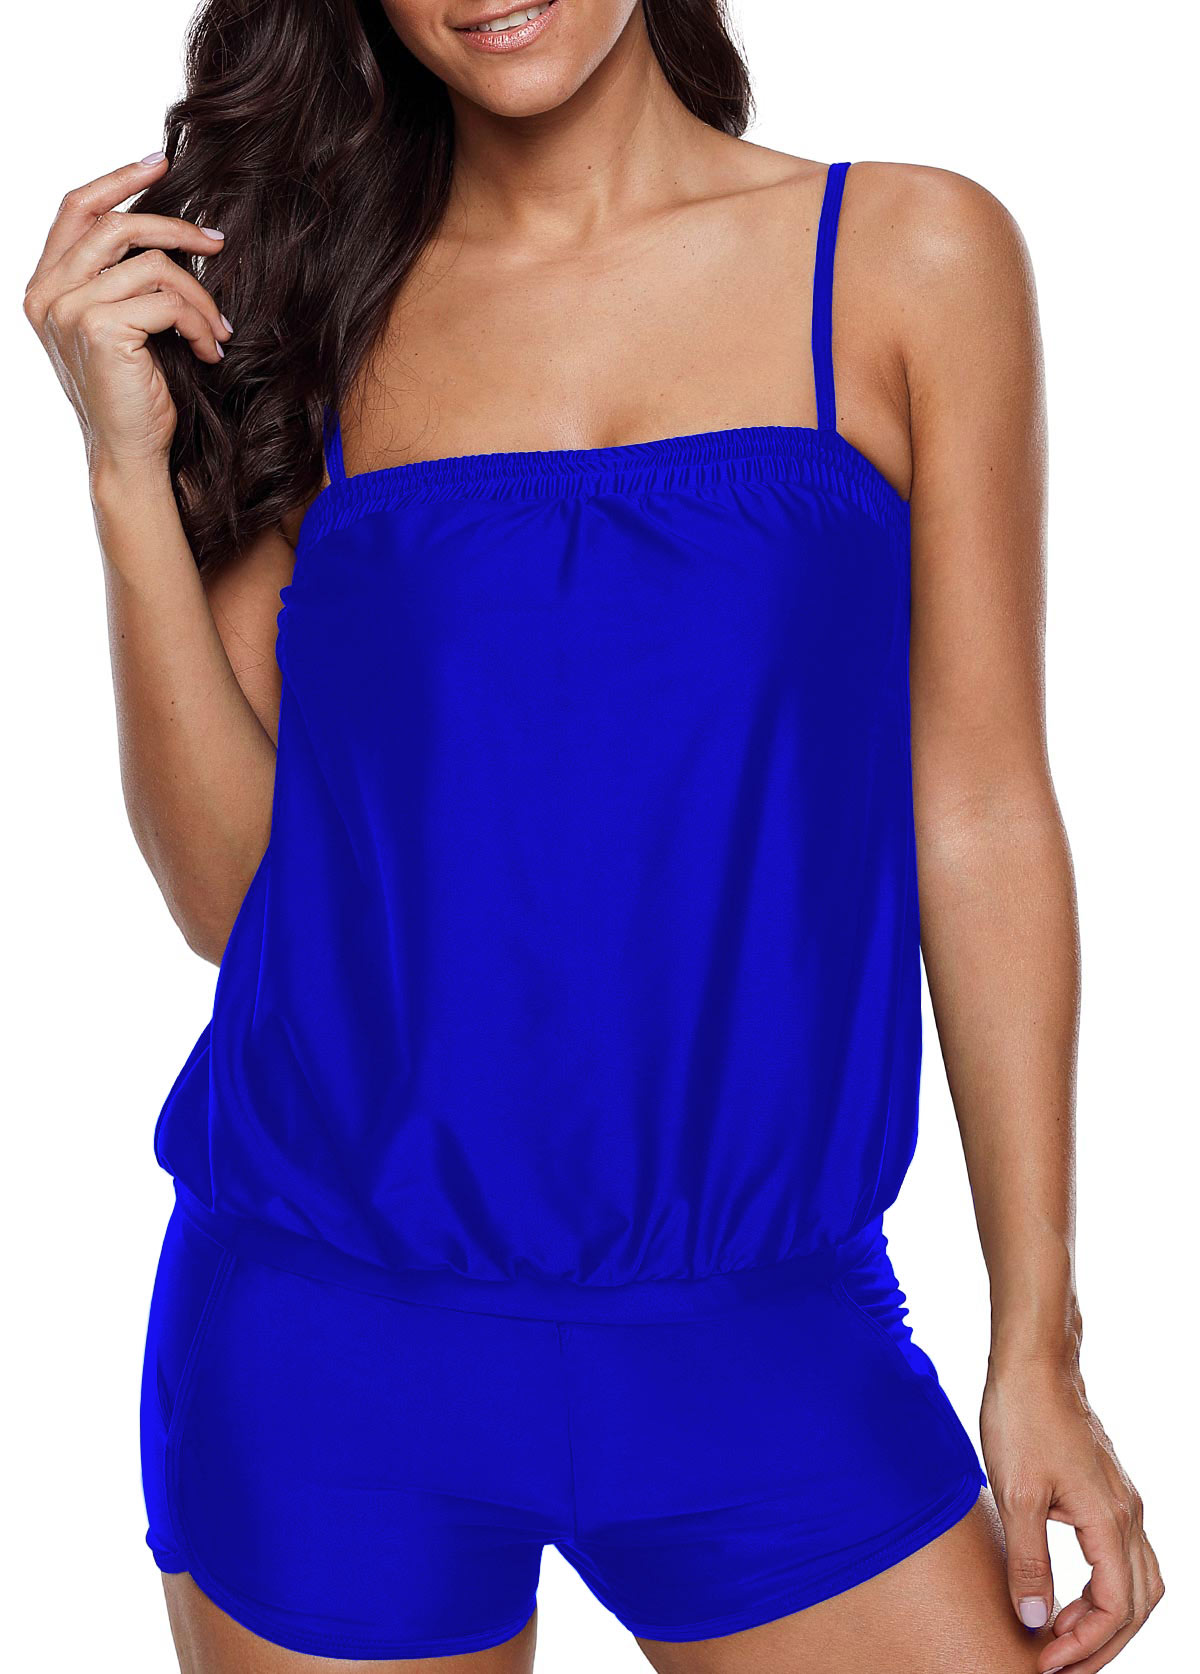 Spaghetti Strap Royal Blue Tankini Set